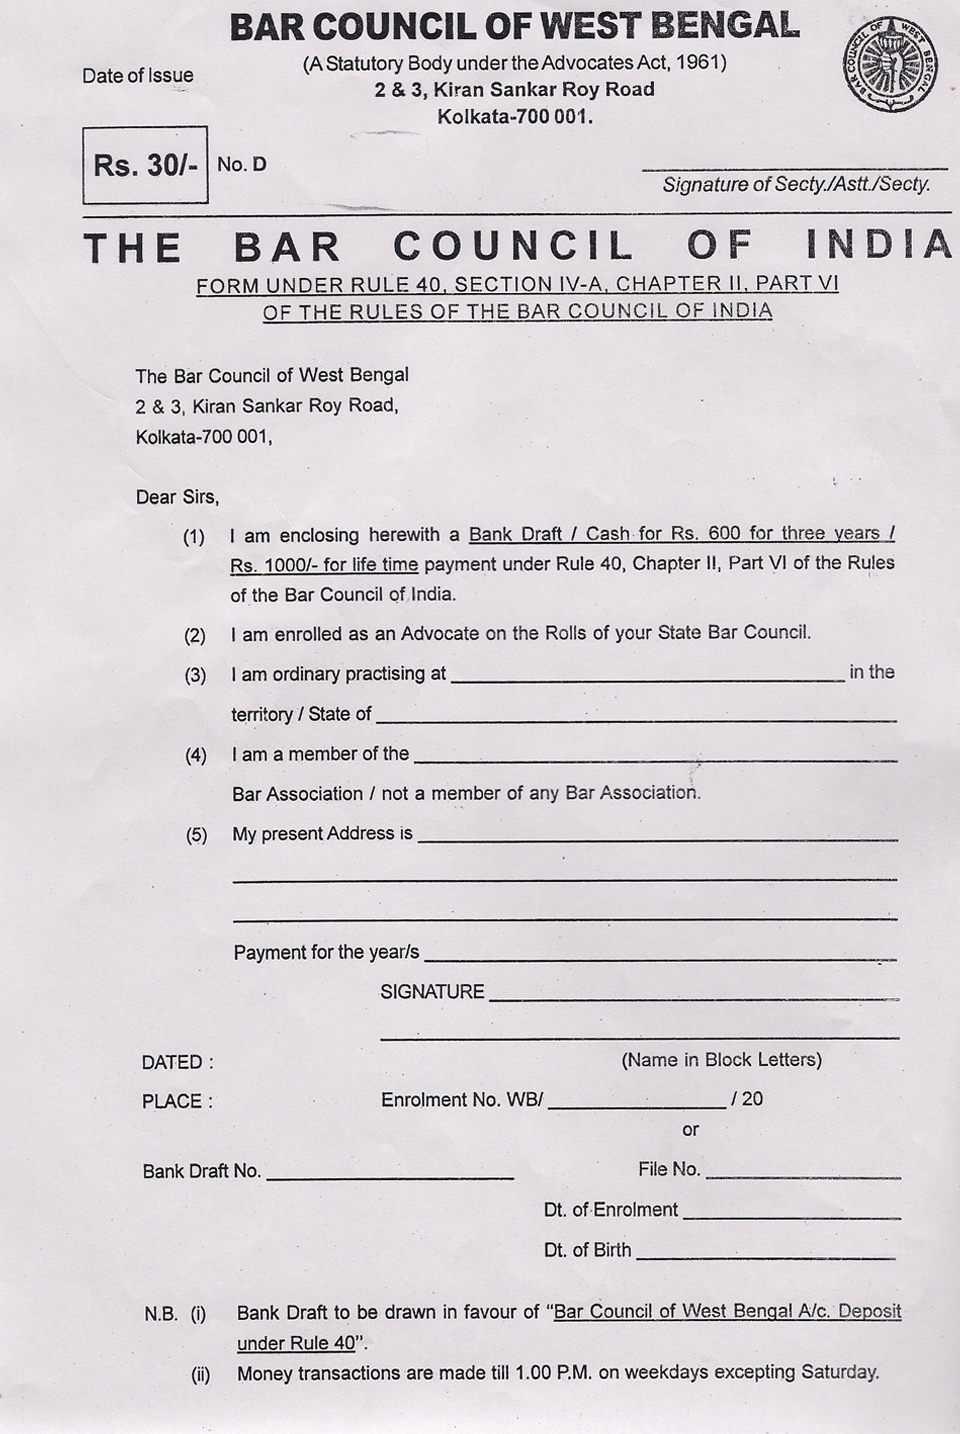 The Bar Council of West Bengal :: Download Forms West Bengal Job Card Form Download on business card form, time card form, insurance card form, planning form, bin card form, job card size, employment application form, name card form,